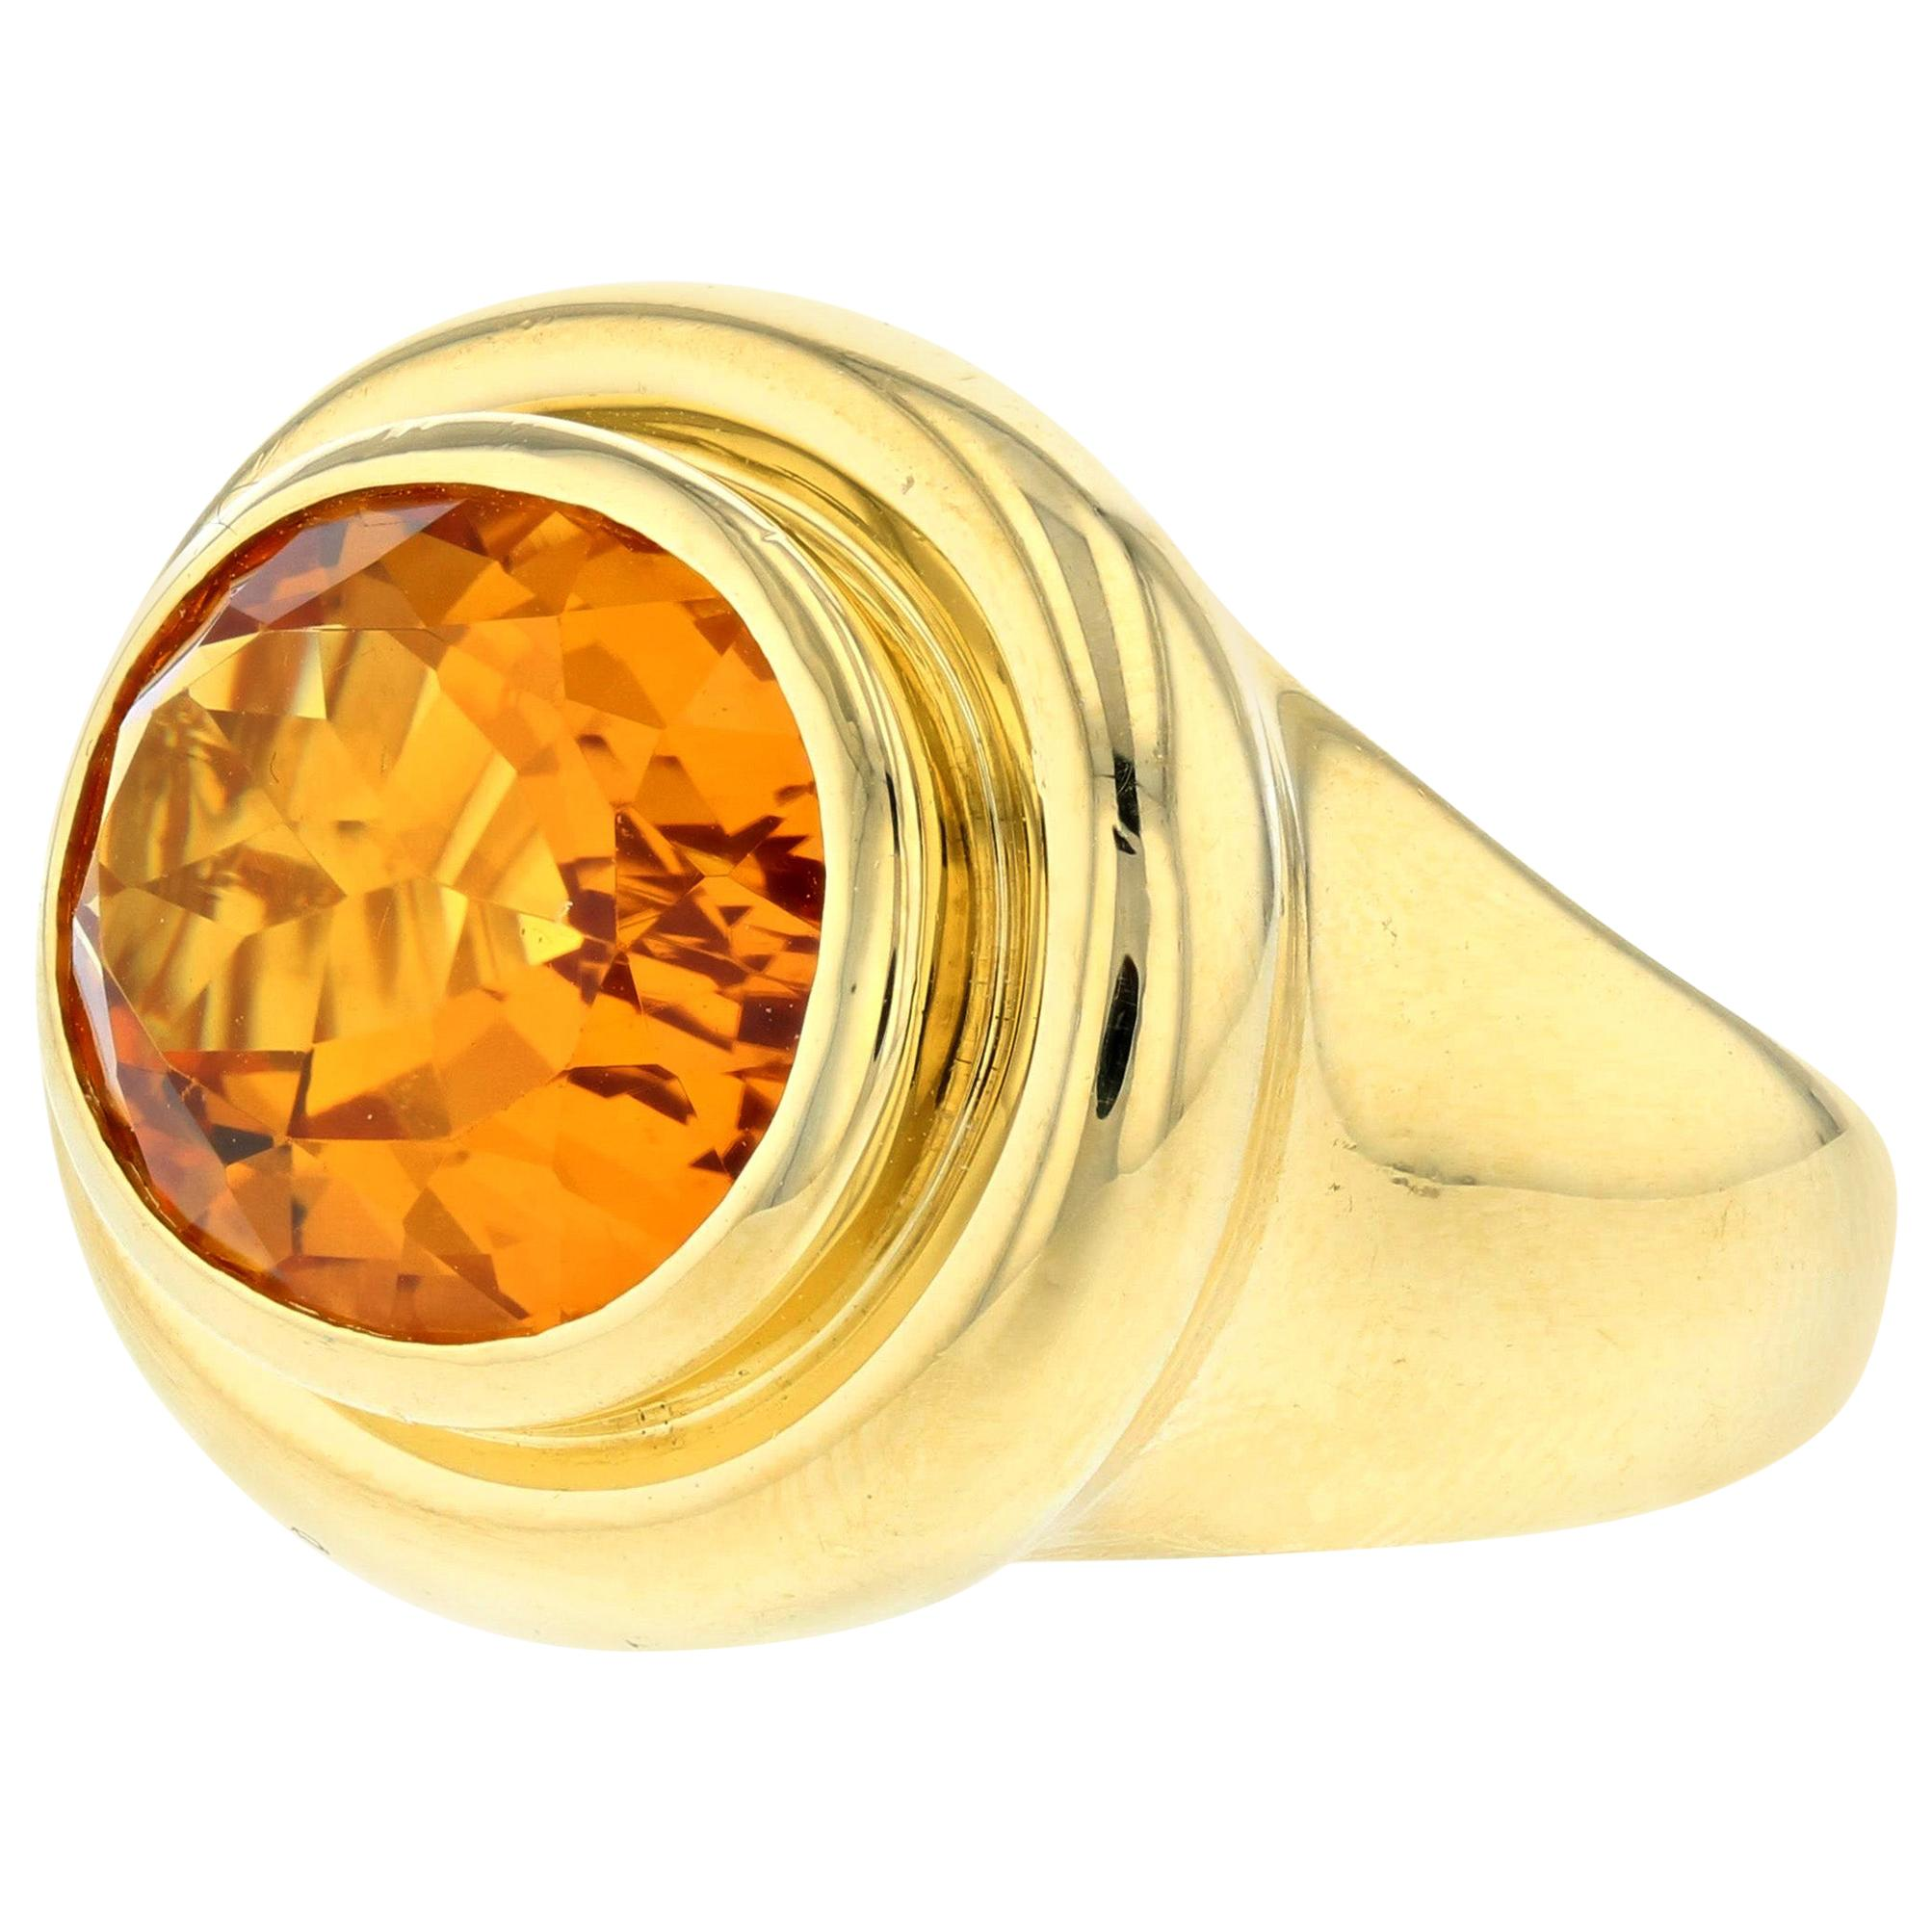 Paloma Picasso for Tiffany & Co. 18K Yellow Gold Citrine Ring